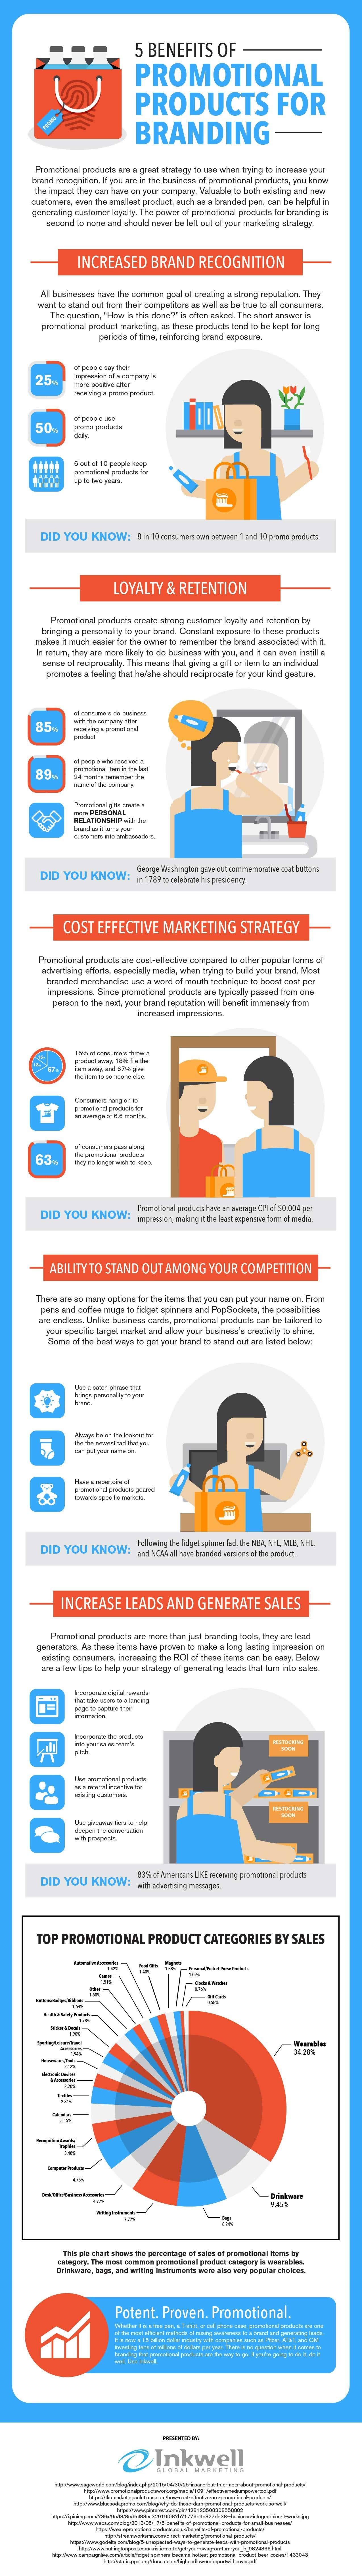 5-benefits-of-promotional-products-for-branding-infographic